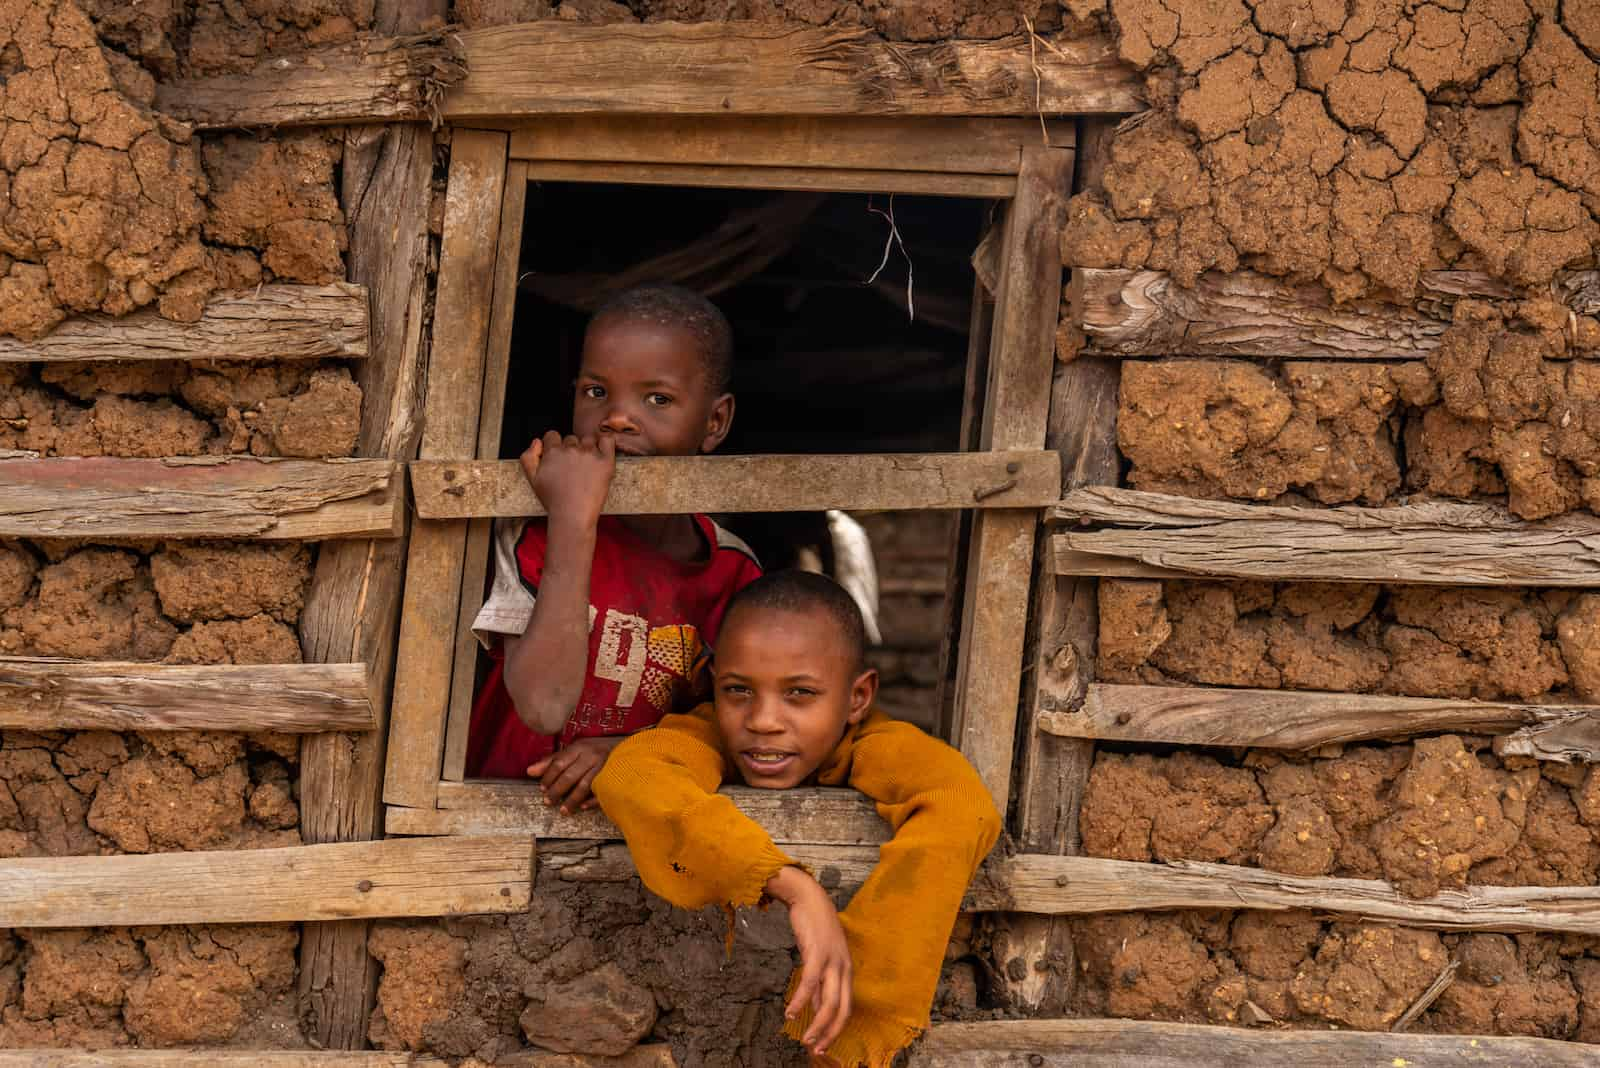 Two boys look out the window of a mud and wood home.